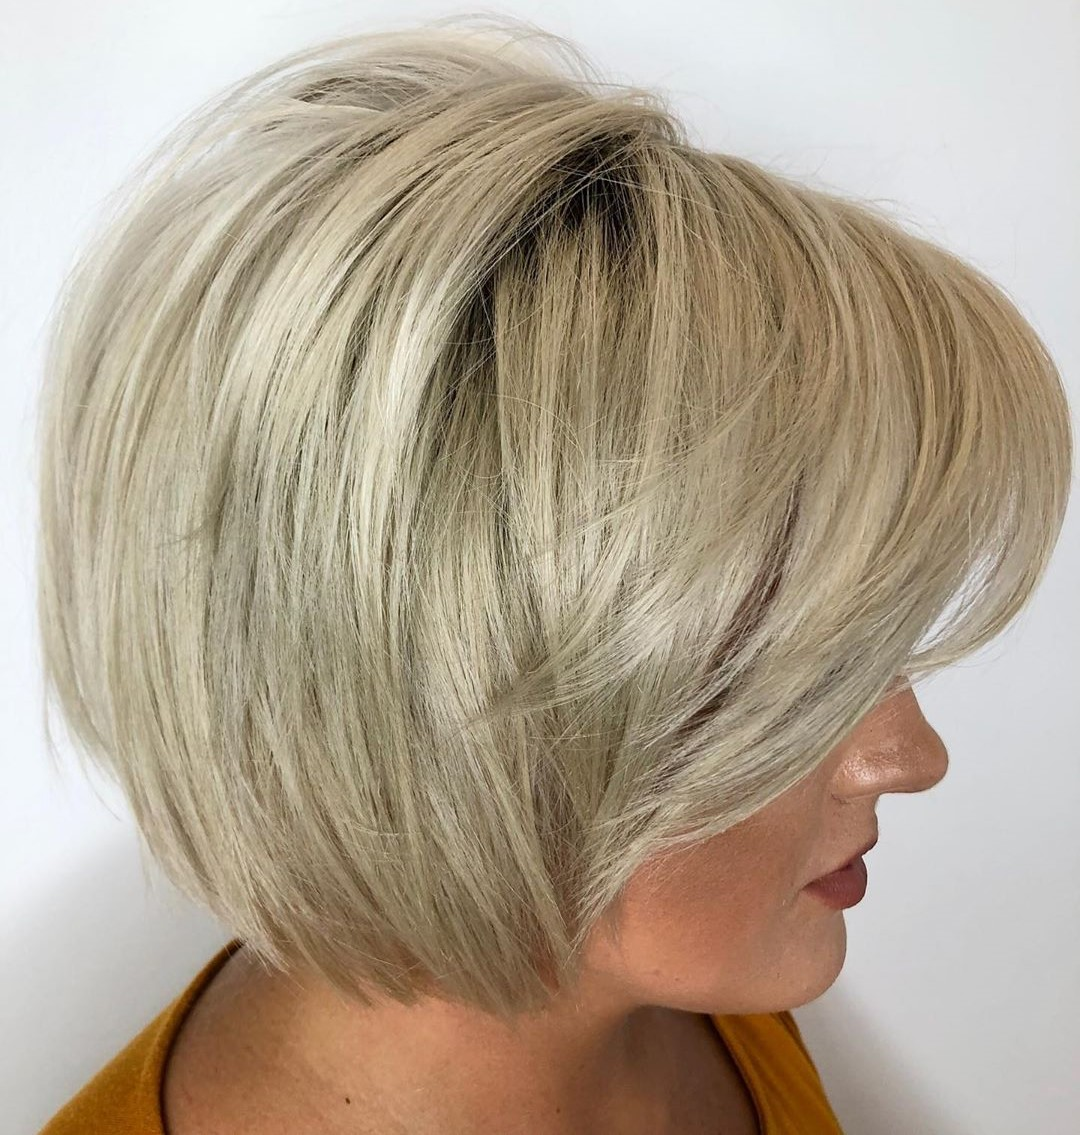 Voluminous Side Bangs for Short Bob